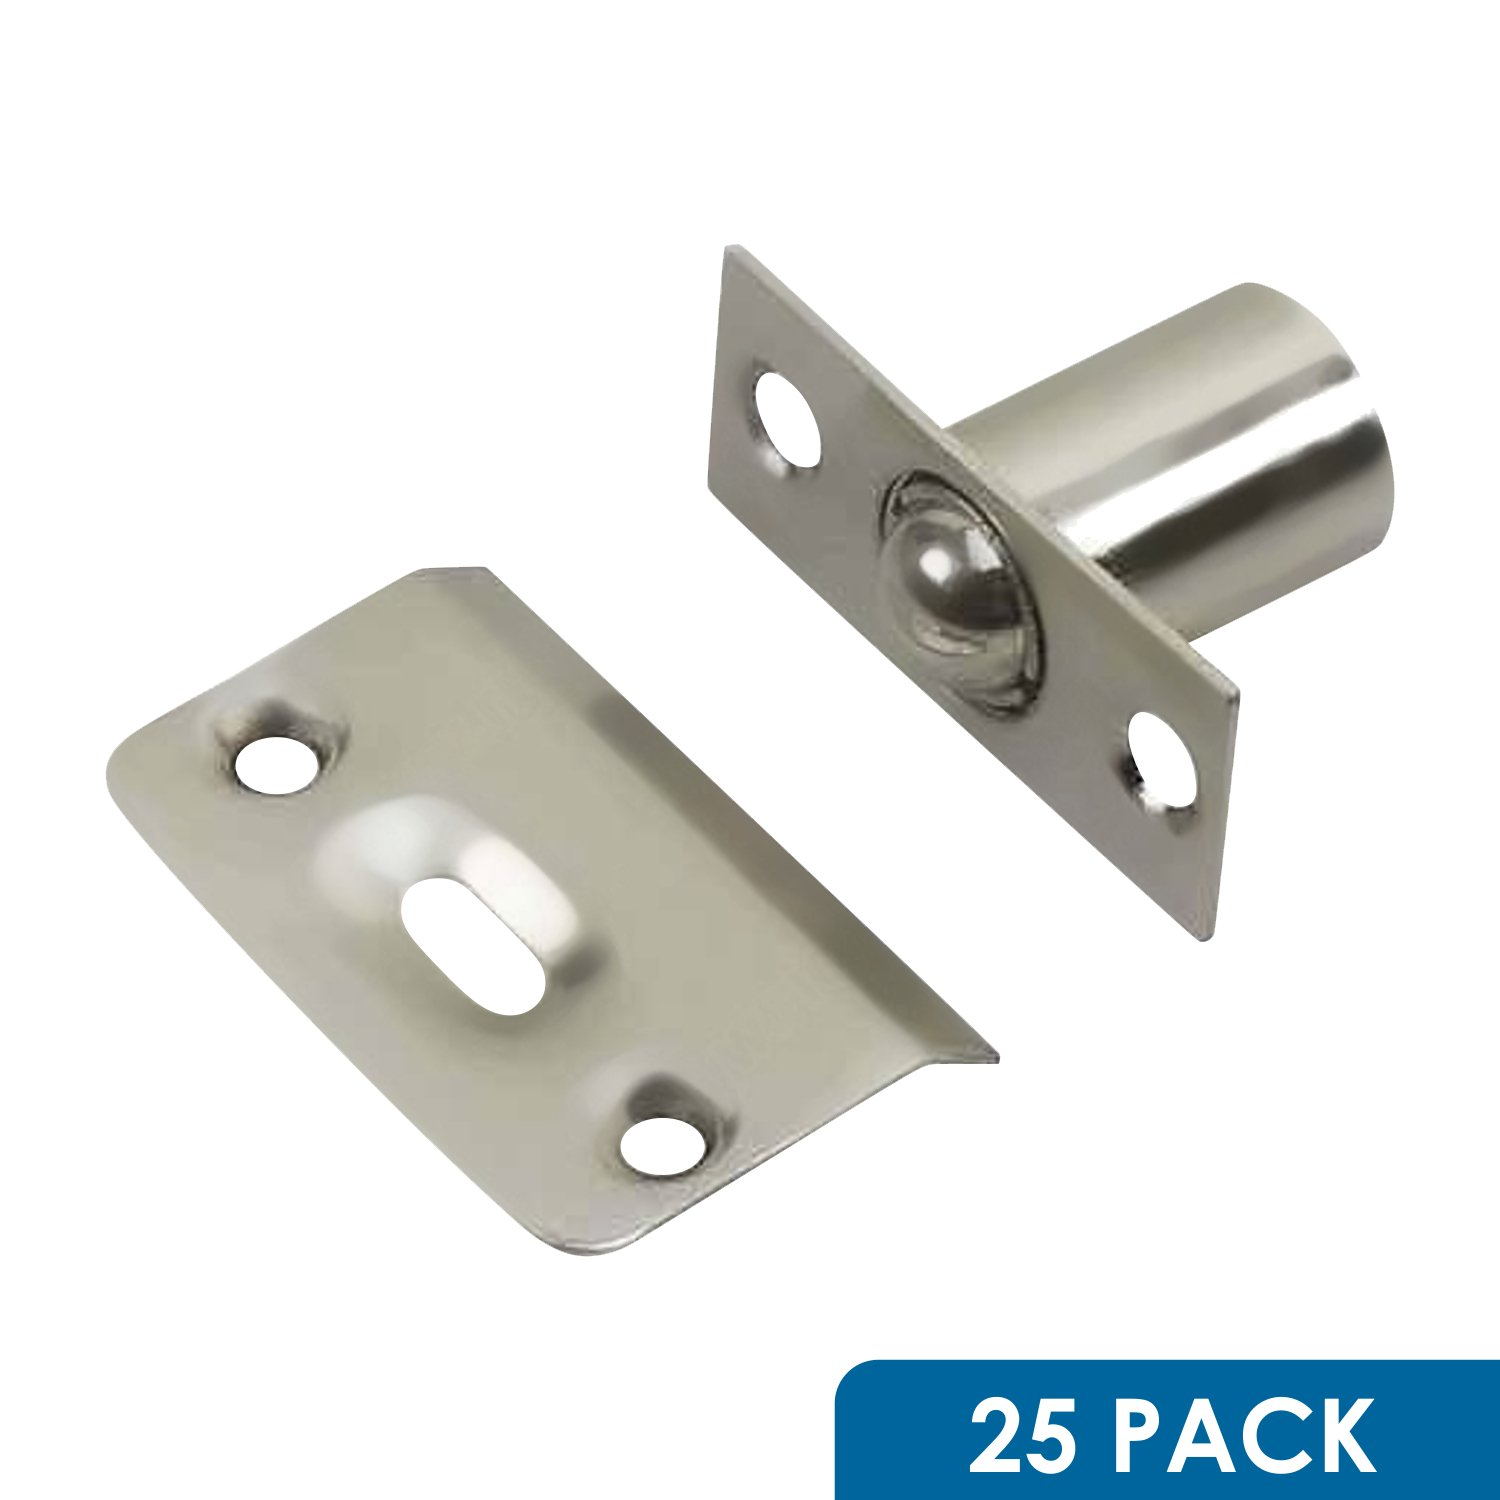 25 Pack Rok Hardware Brushed Nickel Adjustable Large Closet Cabinet Ball Catch Latch with Radius Corners and Strike